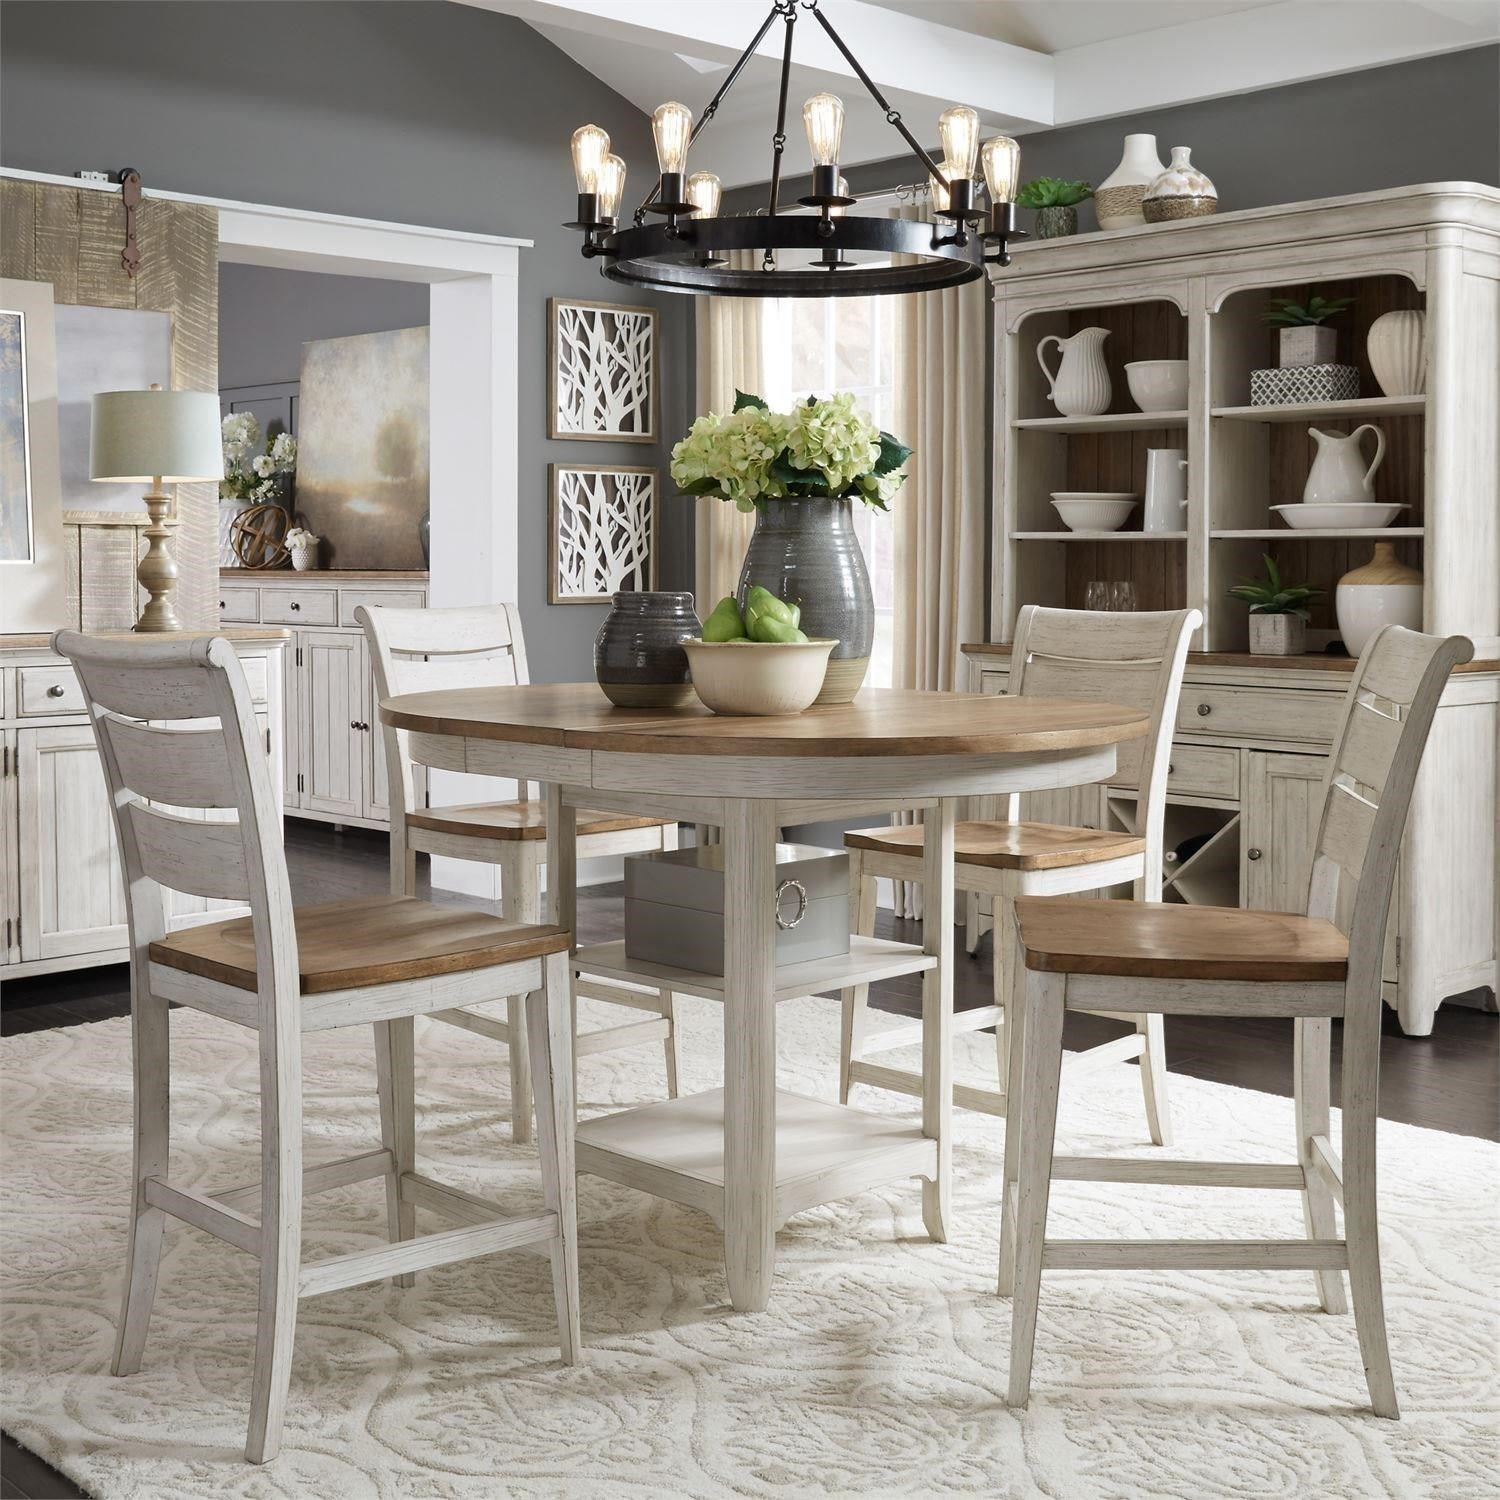 Farmhouse Reimagined 5 Piece Gathering Table Set  by Liberty Furniture at Dinette Depot